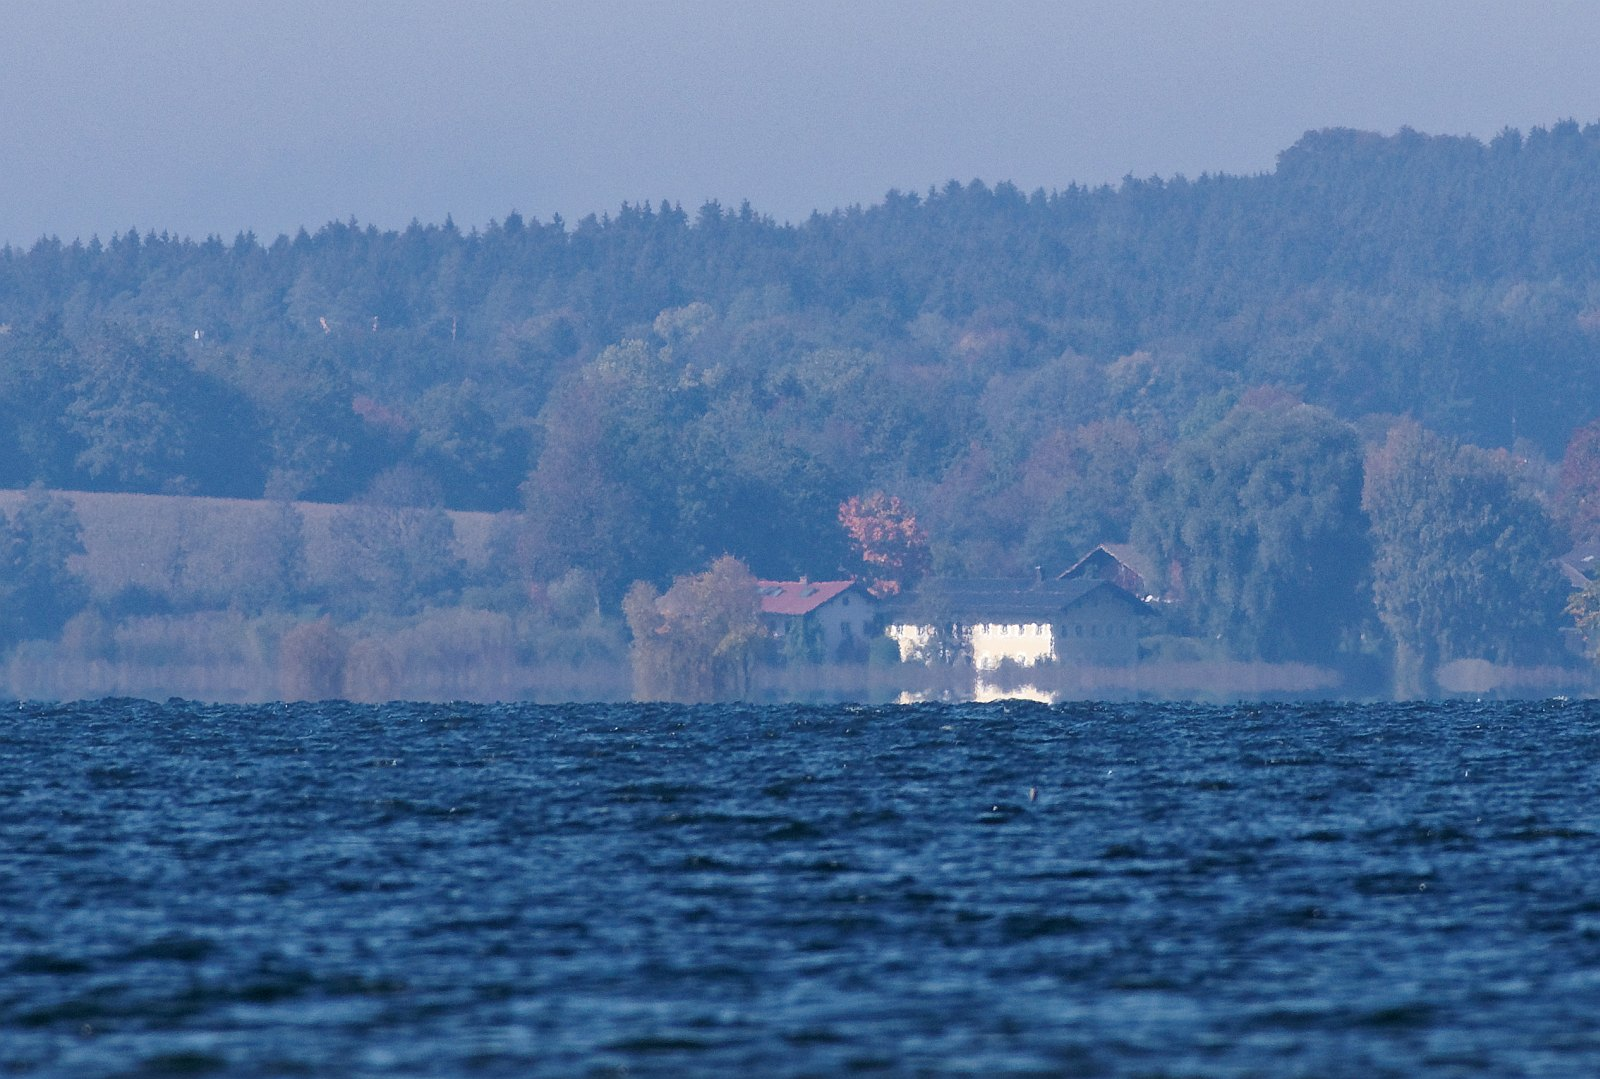 20181011_Fraueninsel_Fata_Morgana_720_3341.jpg